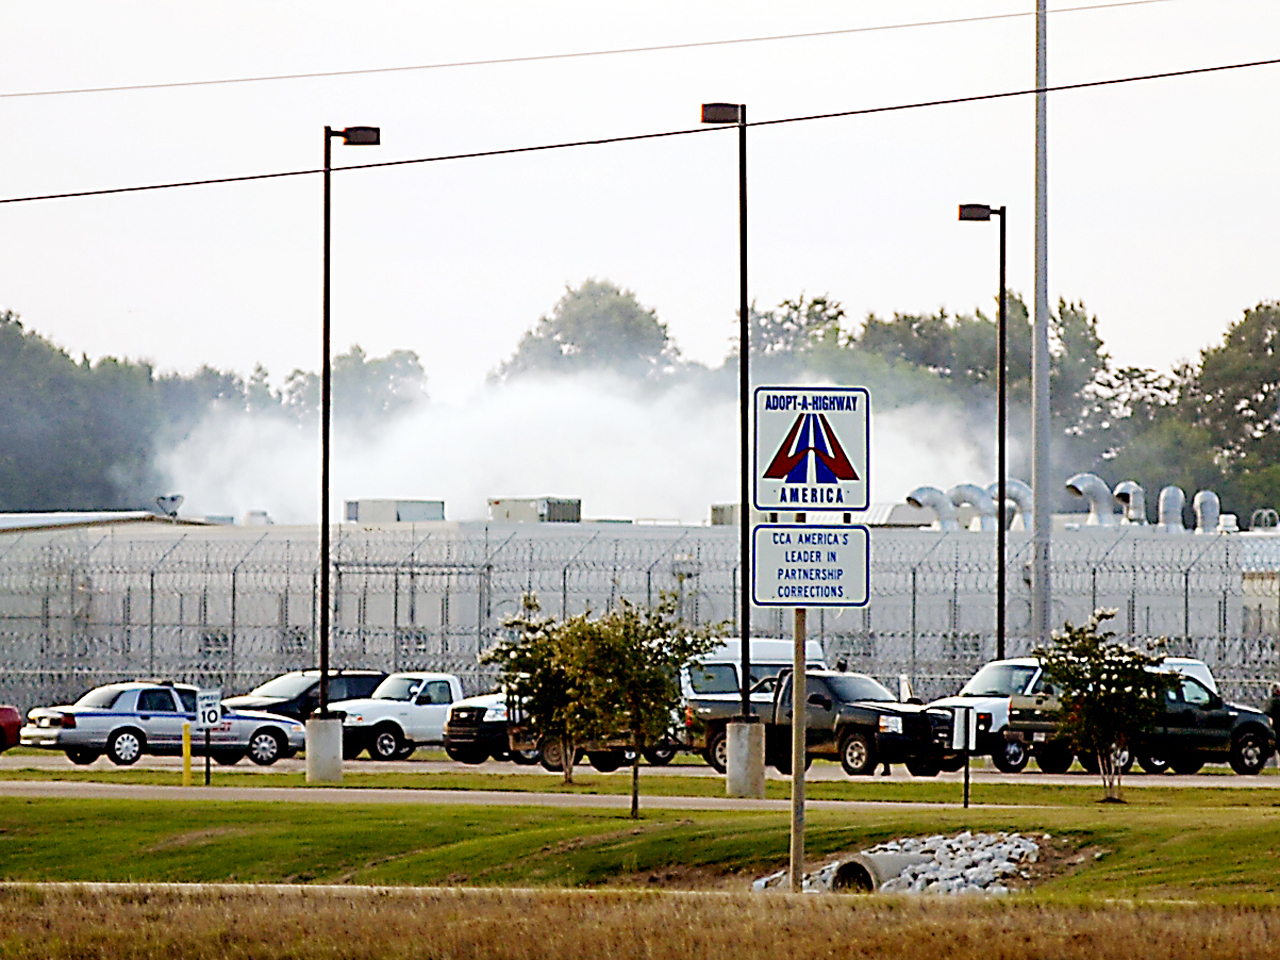 Mississippi prison riot leaves guard dead at private facility